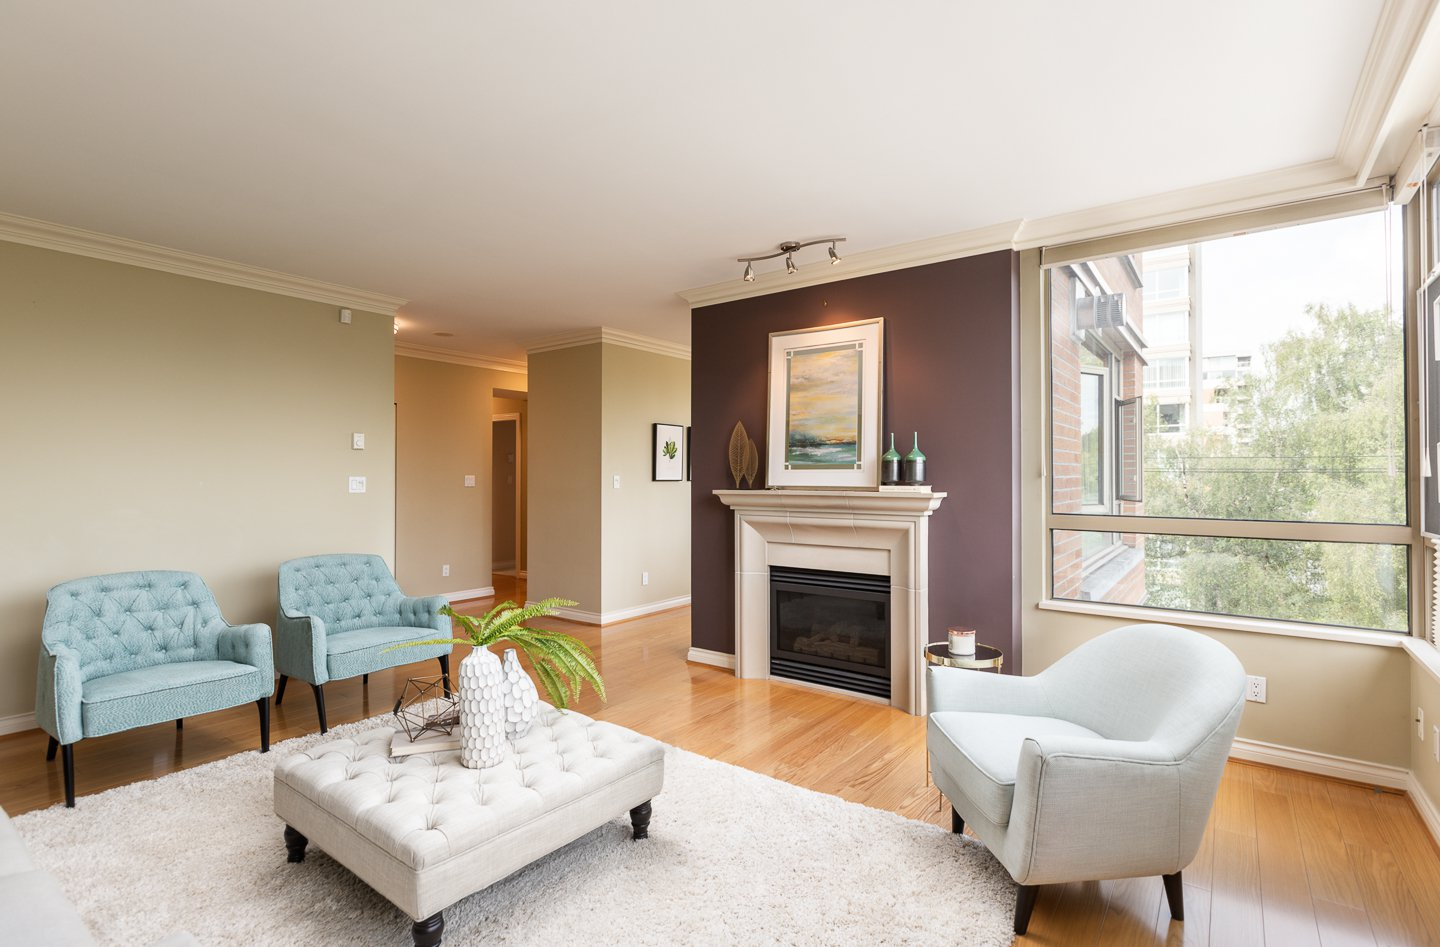 Photo 2: Photos: 401-2580 TOLMIE ST in VANCOUVER: Point Grey Condo for sale (Vancouver West)  : MLS®# R2397003